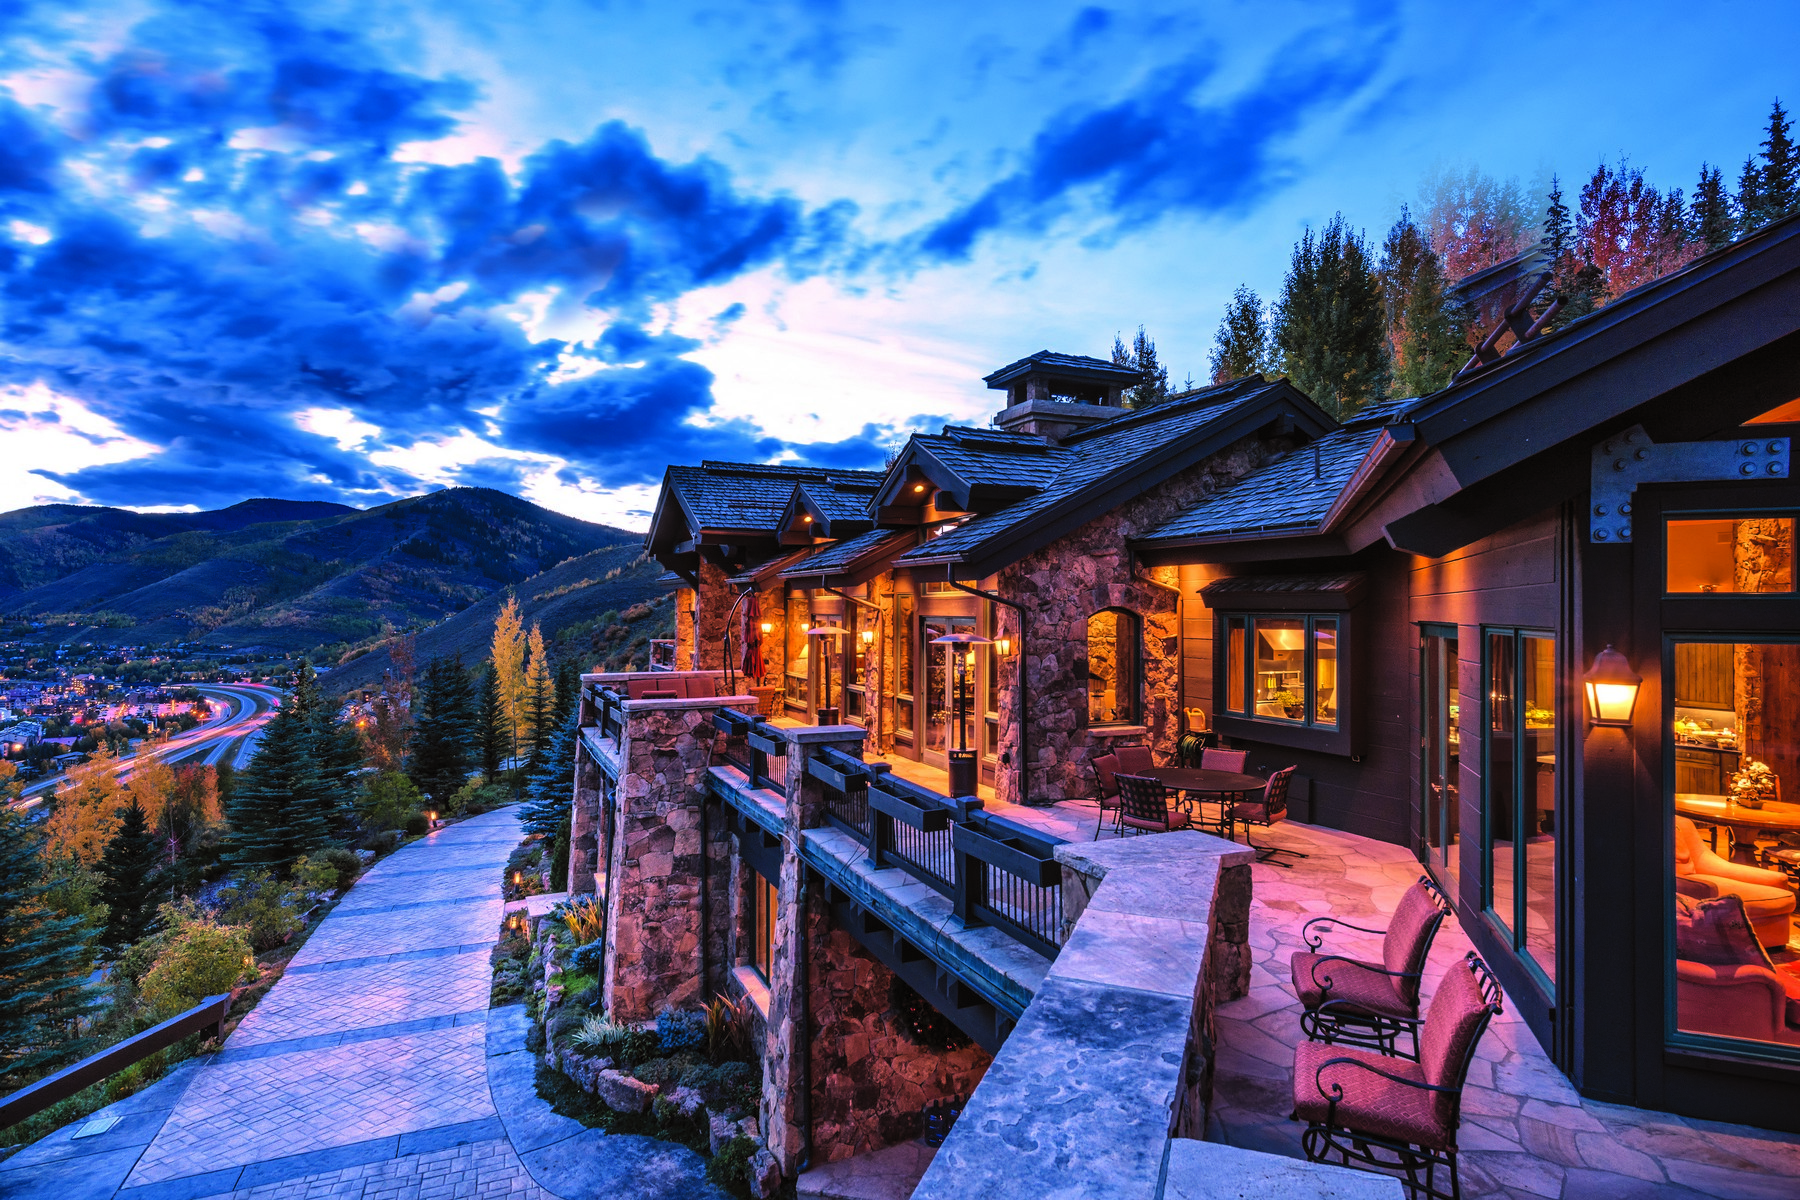 Single Family Home for Sale at Direct Views of Vail Mountain 971 Spraddle Creek Rd, Vail, Colorado, 81657 United States